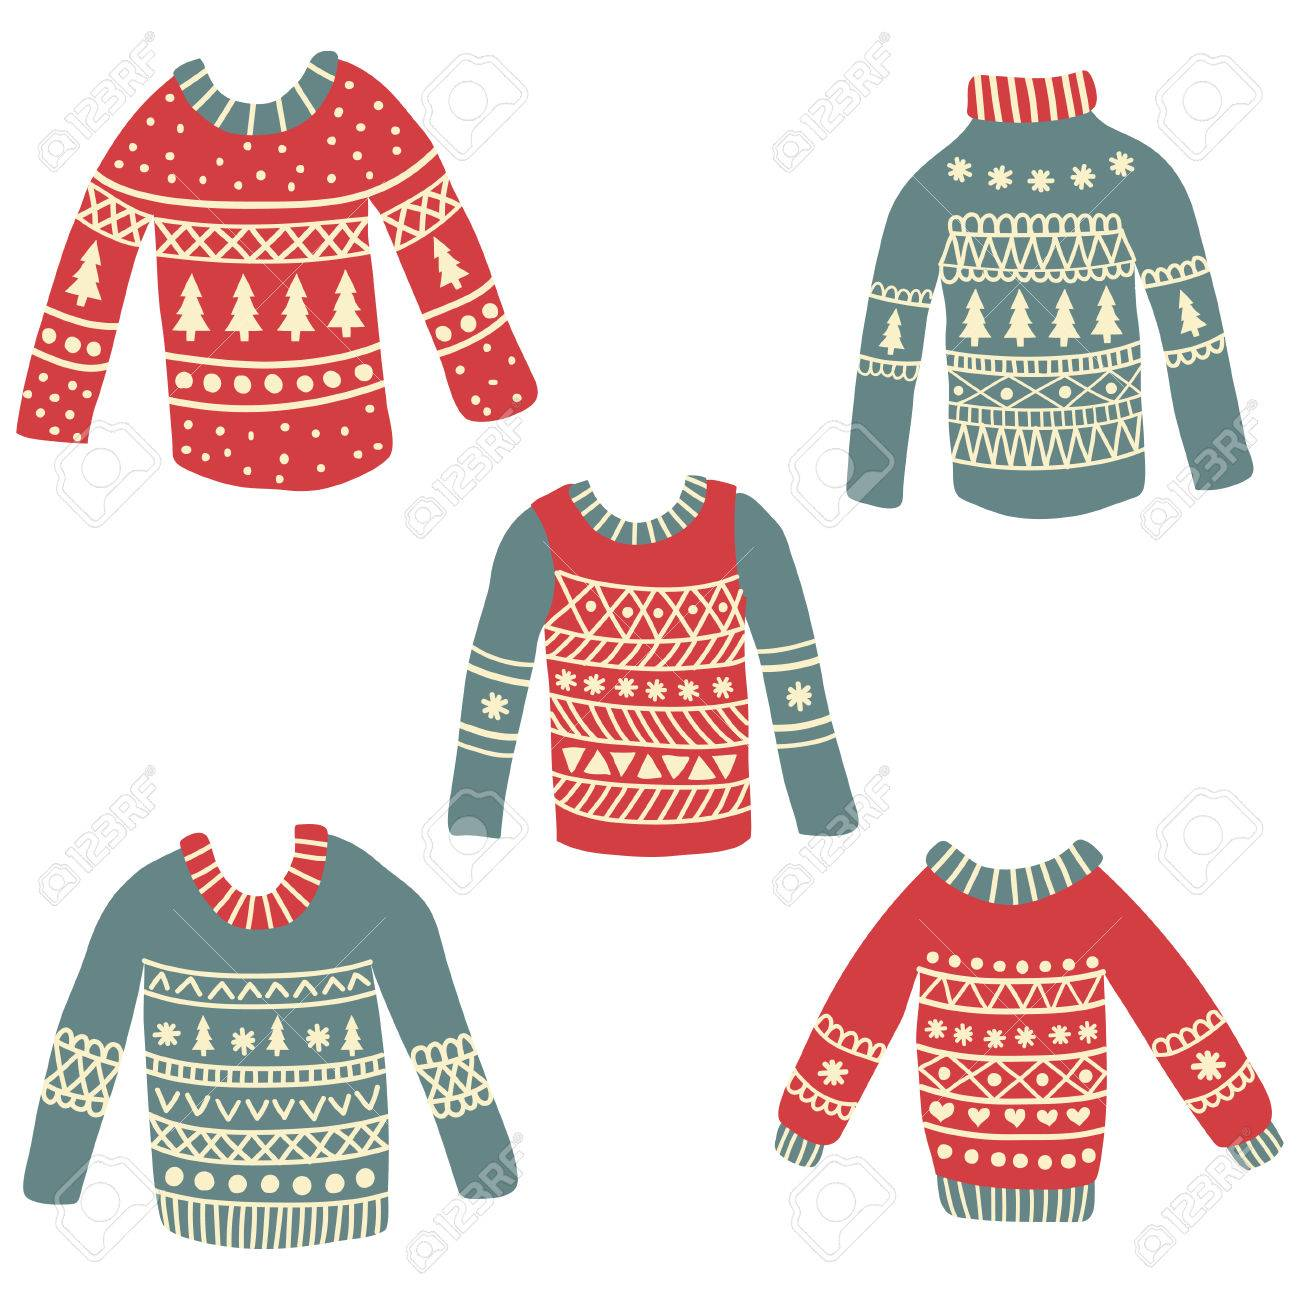 Christmas Sweaters Cute.Set Of Of Cute Hand Drawn Ugly Christmas Sweaters On Isolated